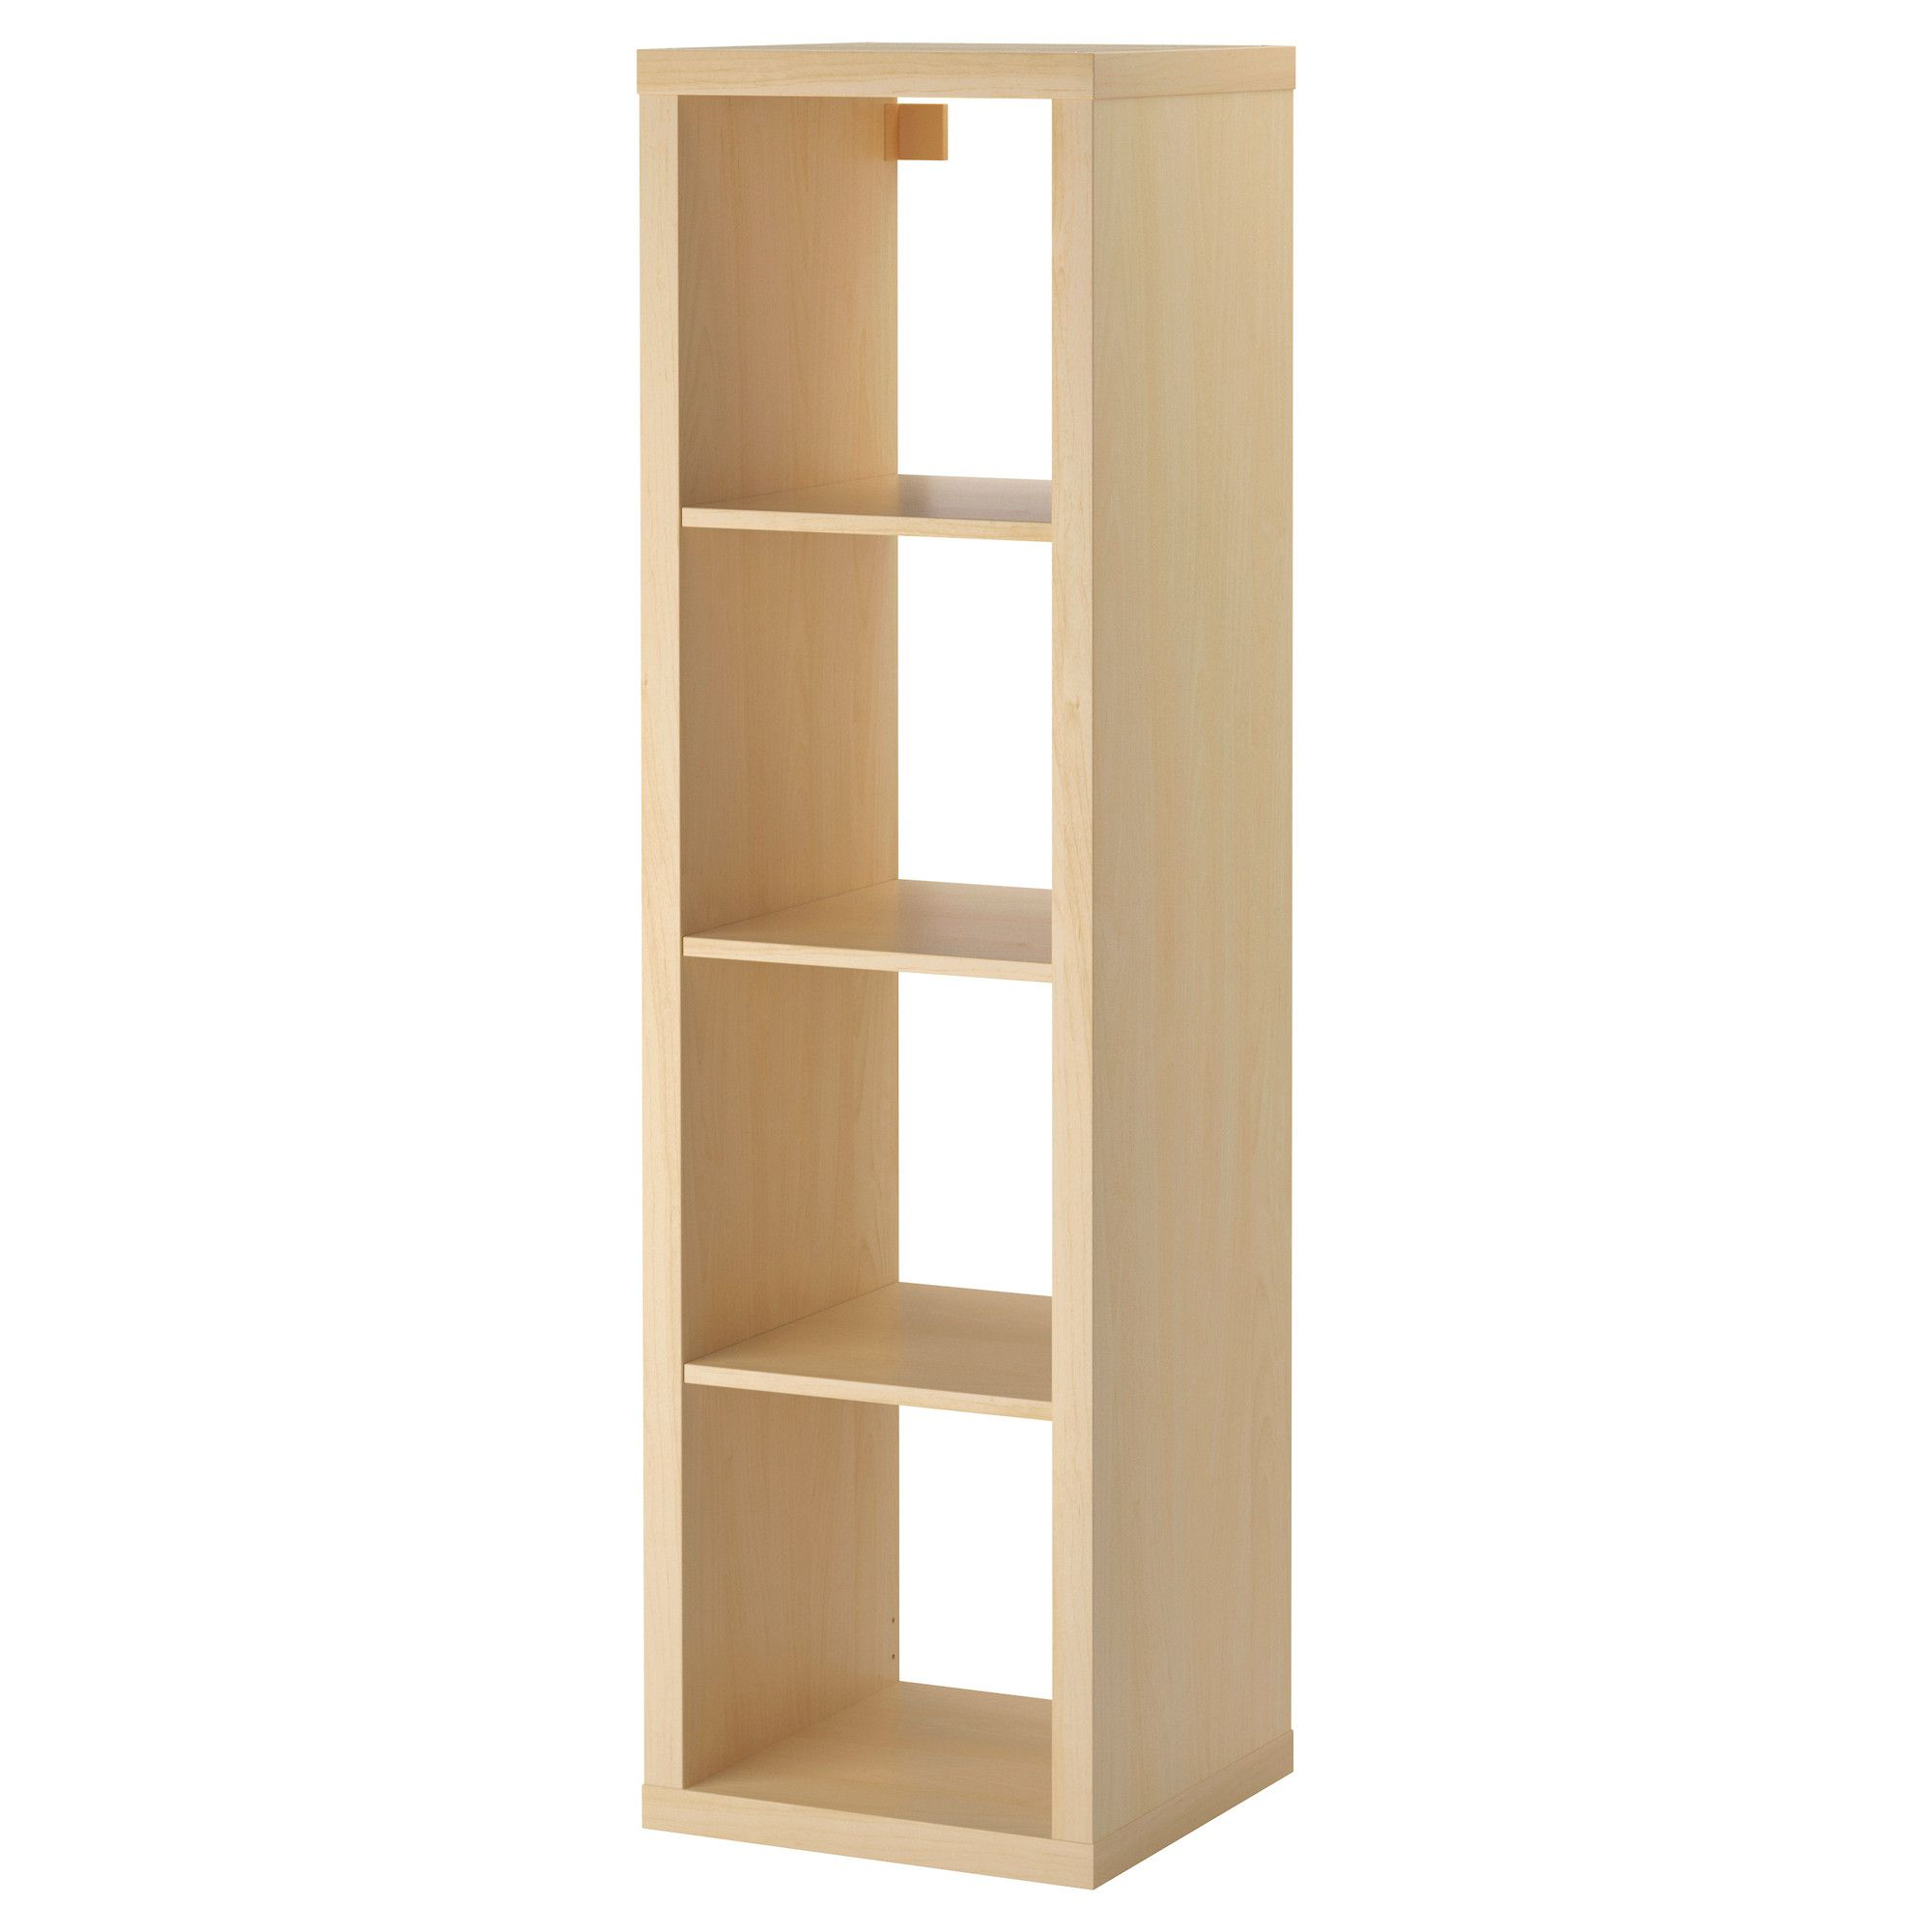 KALLAX Shelf unit, birch effect | Kallax shelving unit ...